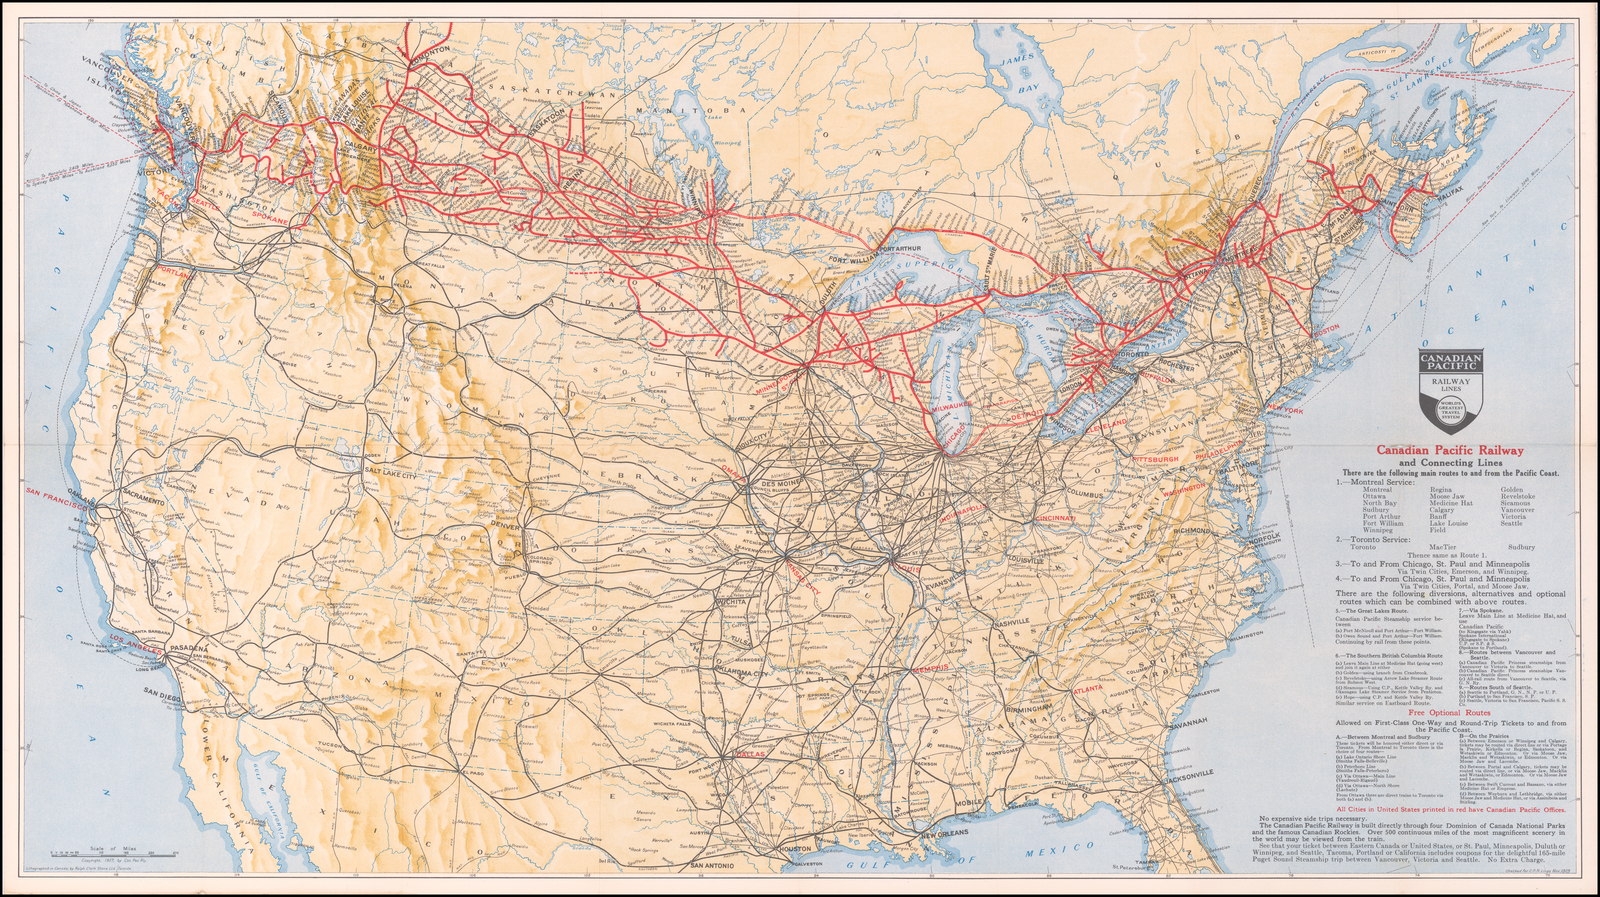 Canadian Pacific Railway and Connecting Lines - Barry ... on soo line railroad, northern pacific railway, canadian pacific holiday train route, go transit, rogers pass, great northern railway, bc rail, canadian national railway passenger service, southern pacific railroad, norfolk southern railway, bnsf railway map, kicking horse pass, canadian pacific train system, canada railway map, kansas city southern railway, cn rail system map, pennsylvania railroad map, national policy, dakota, minnesota and eastern railroad, csx transportation, canadian pacific railroad, atchison, topeka and santa fe railway, canadian national railway company, norfolk and western railway, burlington northern railroad, canadian pacific rr, via rail railway map, canadian pacific rail system, union pacific railroad, quebec central railway map, panama canal railway map, canadian pacific holiday train schedule, via rail, cn railway map, canadian railroad route map, burlington northern santa fe map, james j. hill, soo line railroad map, british columbia railway map,